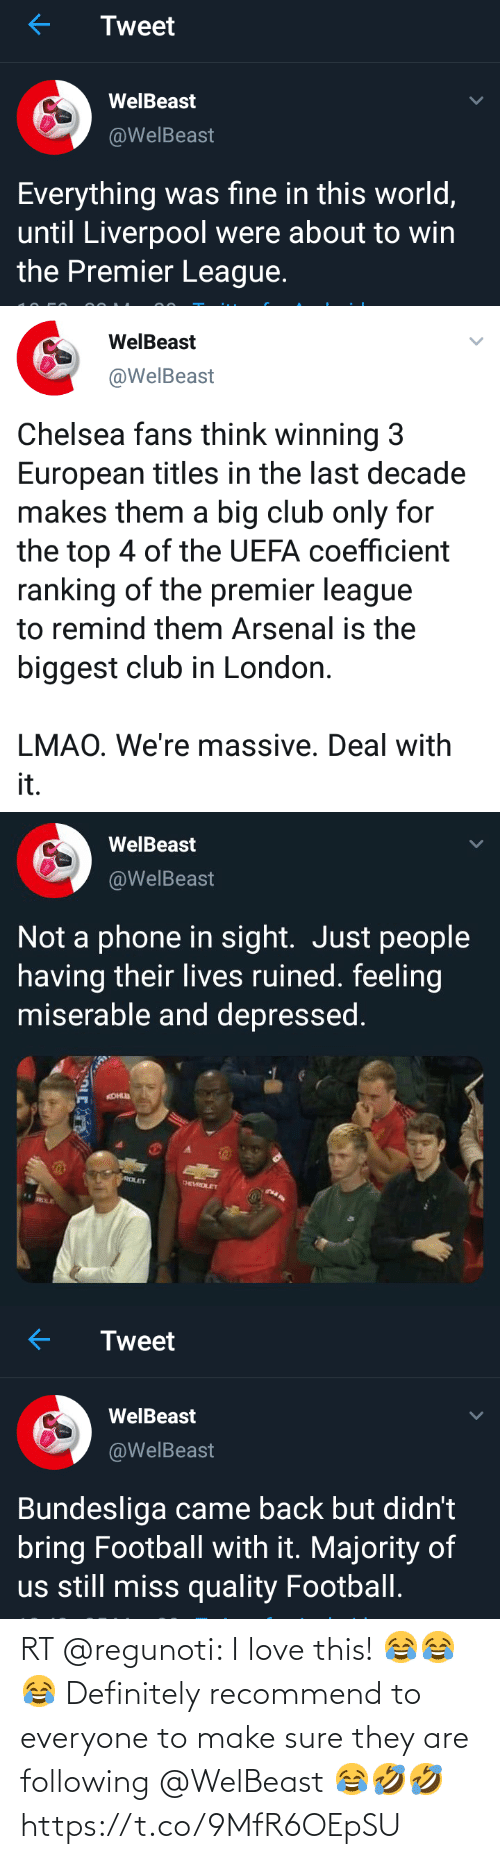 following: RT @regunoti: I love this! 😂😂😂 Definitely recommend to everyone to make sure they are following @WelBeast 😂🤣🤣 https://t.co/9MfR6OEpSU